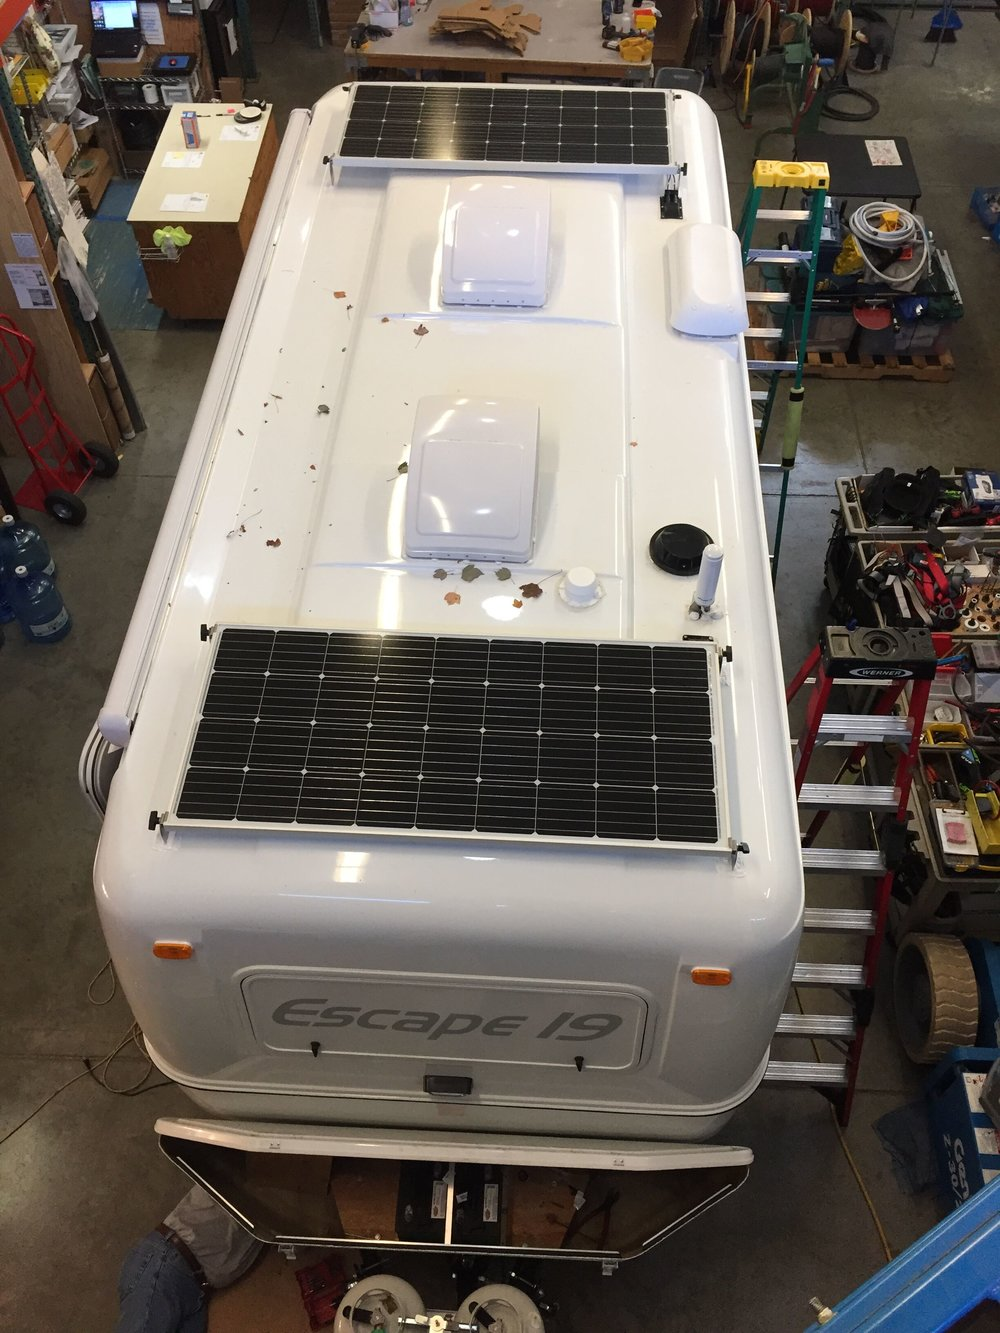 Solar Panel Installation For Rvs Trailers Am California Trailer Wiring Diagram Equipment Added 2x Sf180w Kits 1x Sunrunner Victron Mppt 30a Charge Controller Core